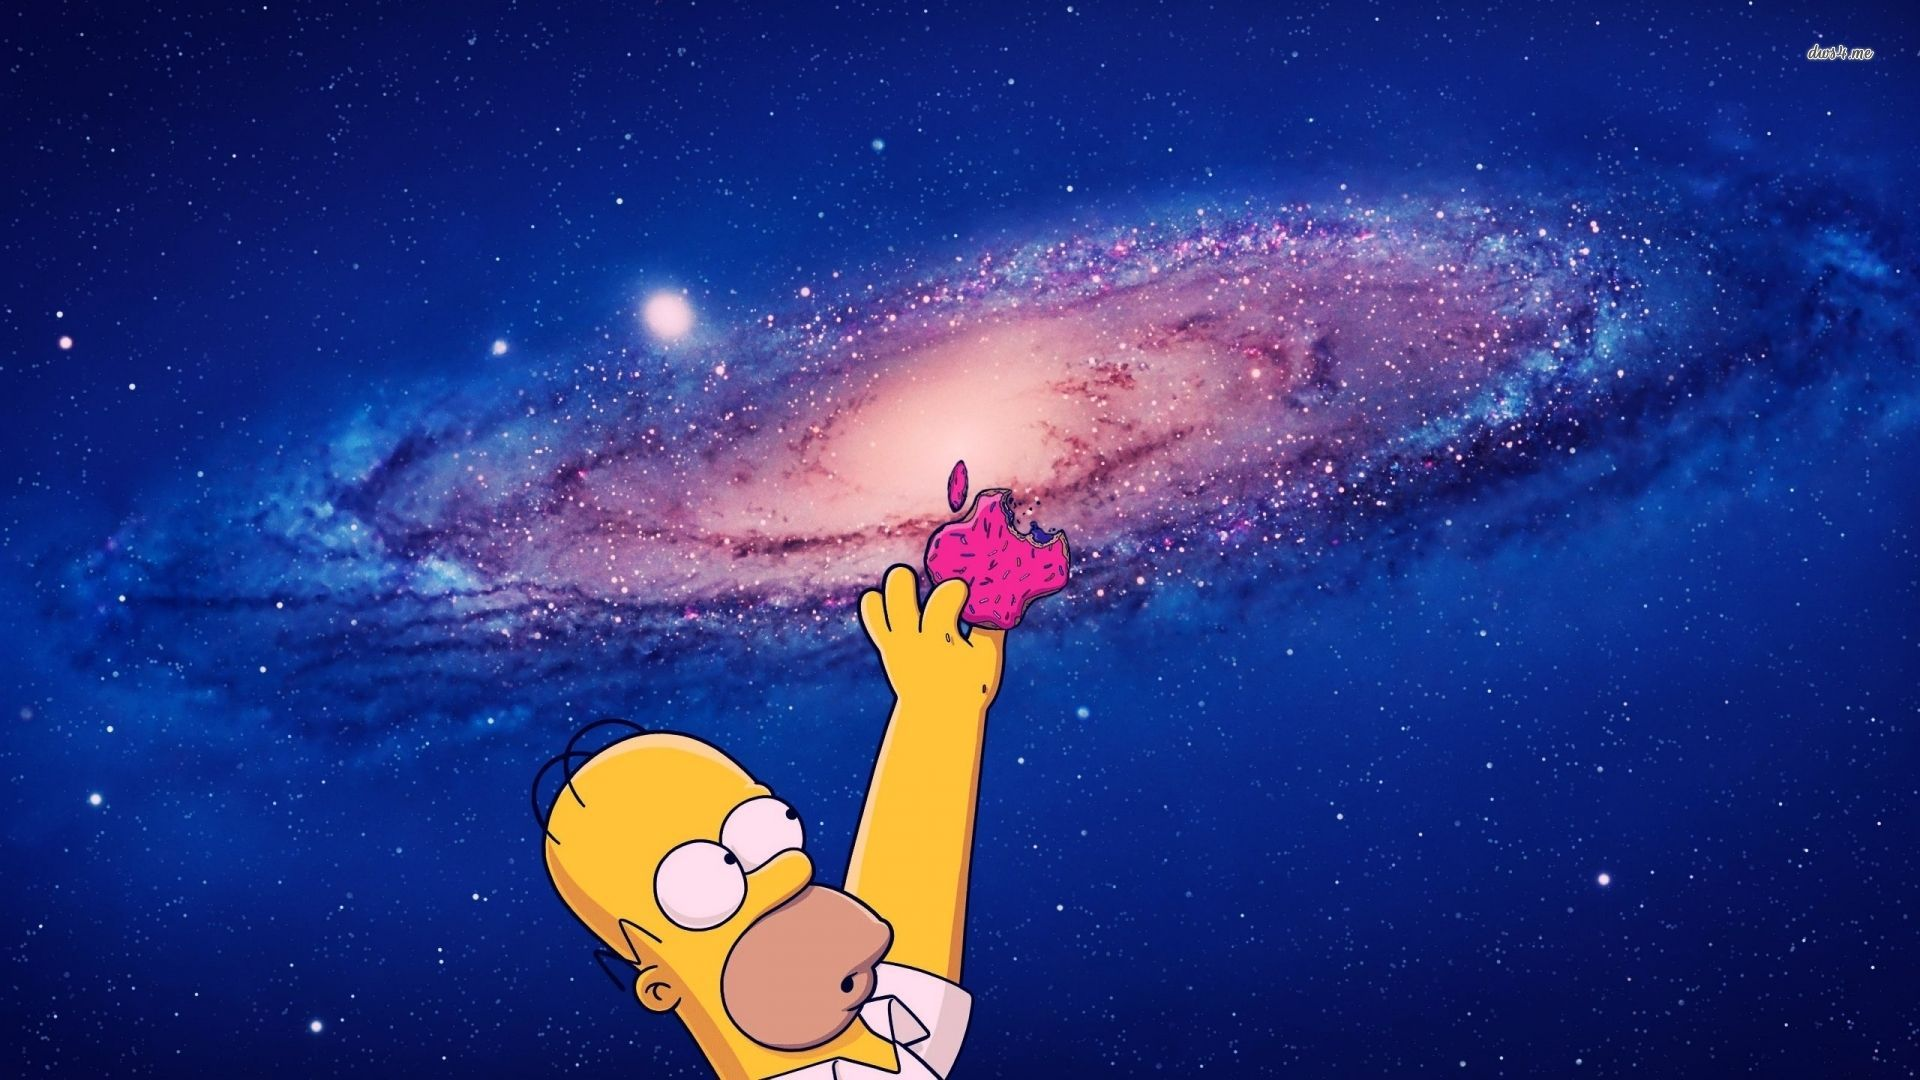 Hd wallpaper zone - Hd The Simpsons Wallpapers Wallpaper Zone